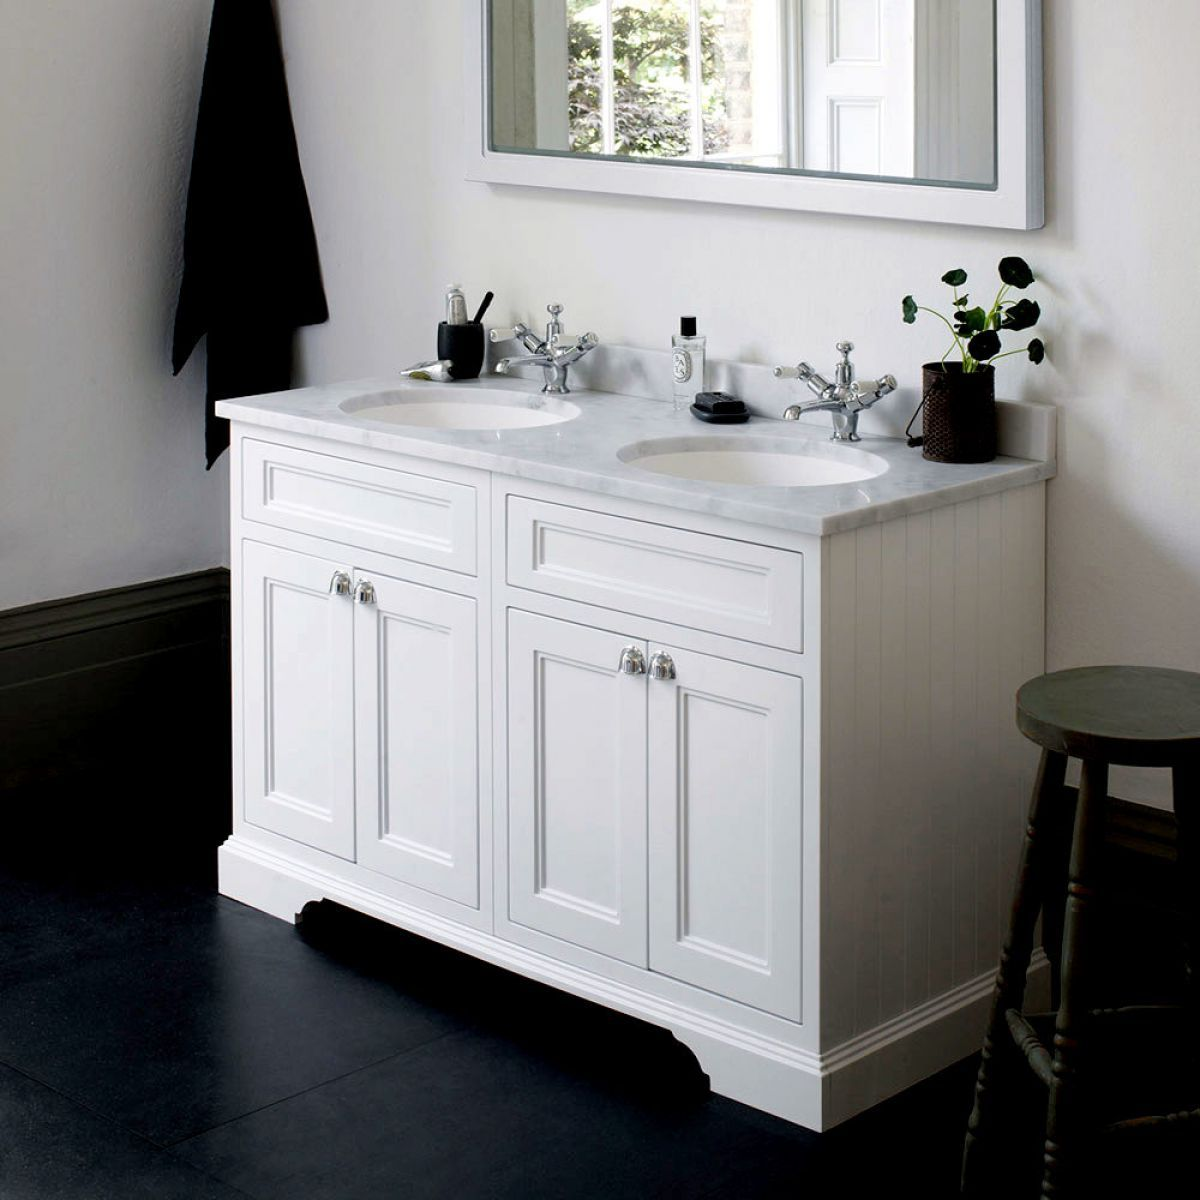 Endearing 40 Luxury Bathroom Vanity Units Uk Decorating Inspiration Of Robiny Bespoke Furniture